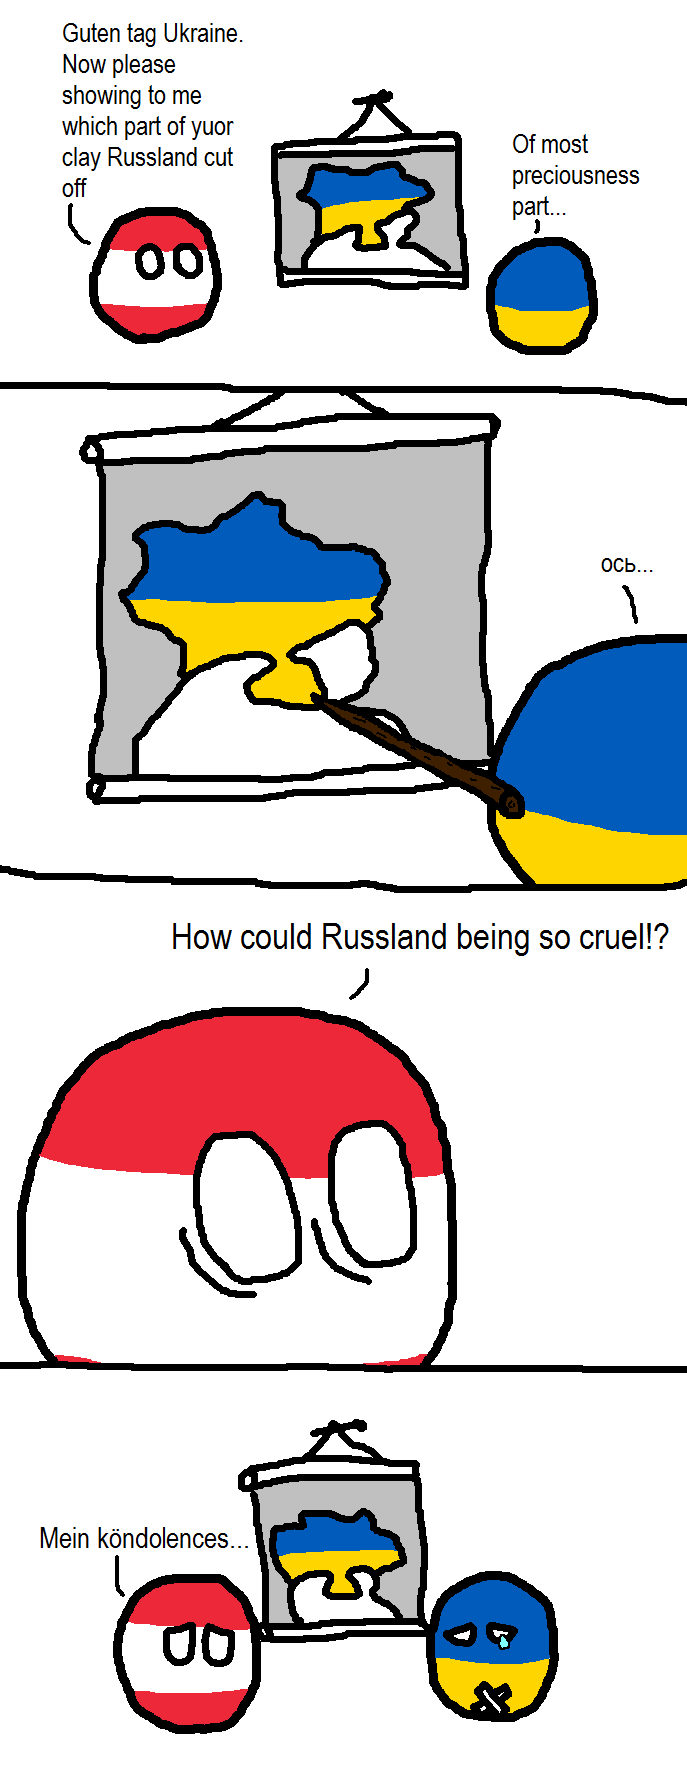 Ukraine no longer feels like itself...